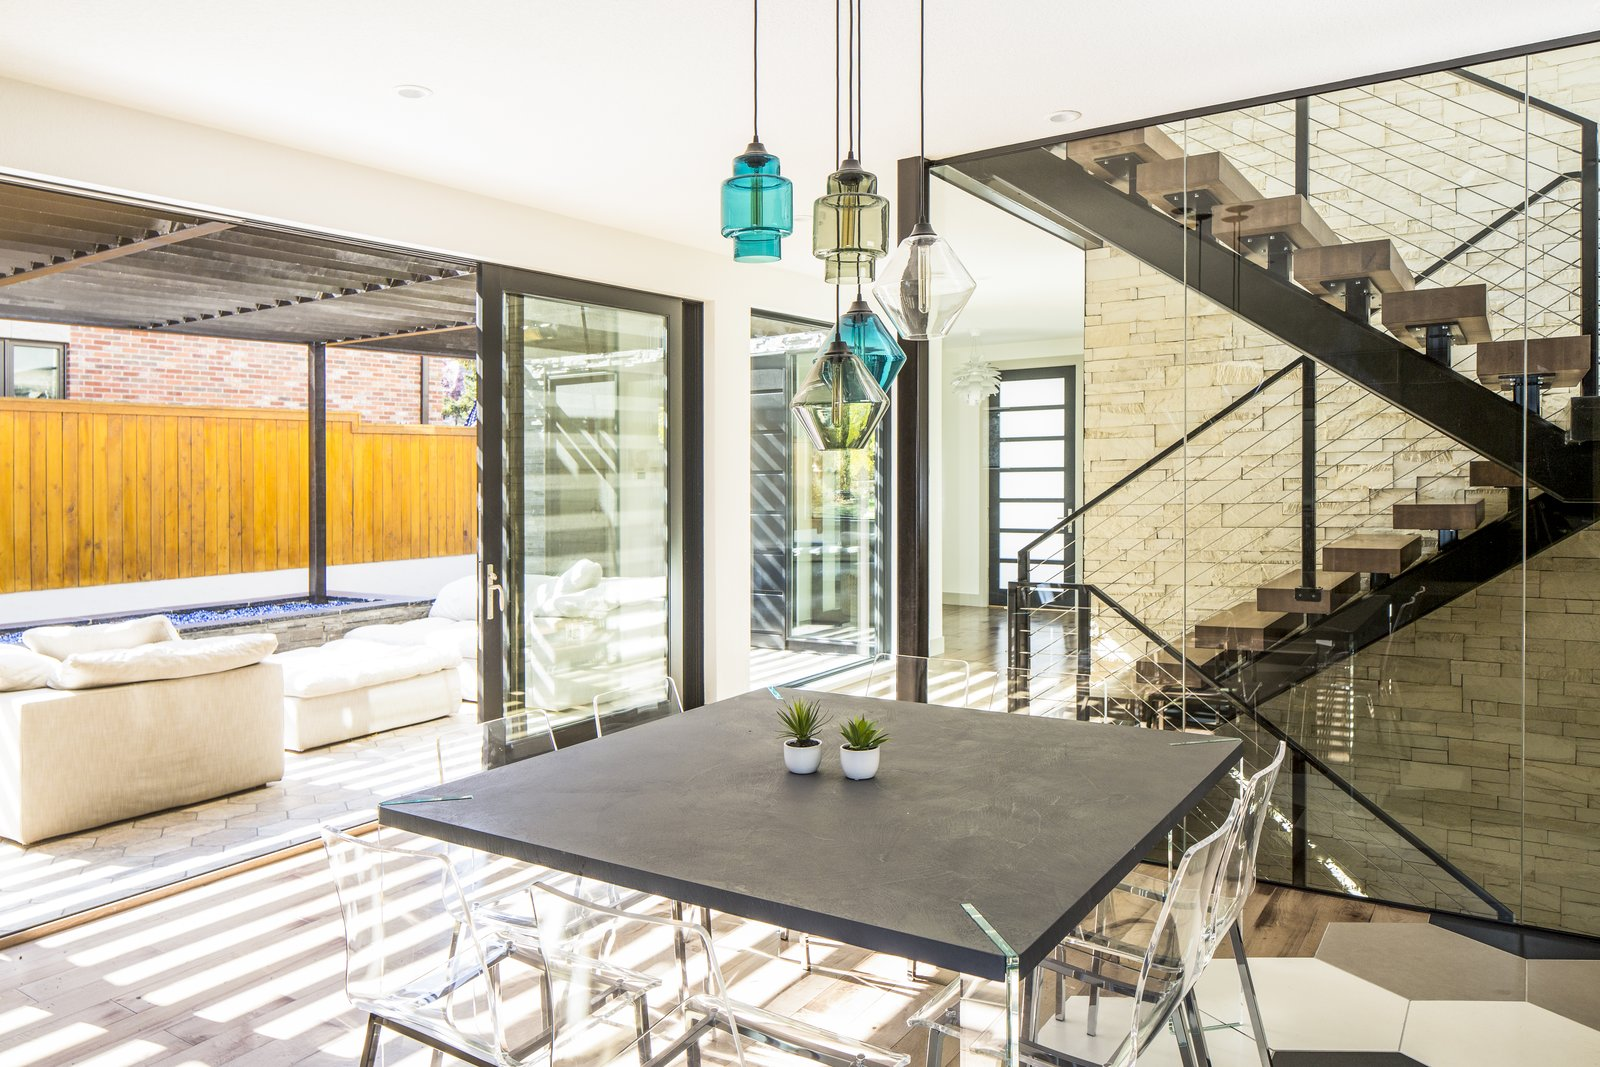 Dining Room, Chair, Table, Gas Burning Fireplace, Medium Hardwood Floor, and Pendant Lighting Dining area opens to exterior lounge and firepit. Steel and maple butcherblock staircase with stone wall and floor to ceiling glass enclosure.   Hilltop Residence by Design Platform